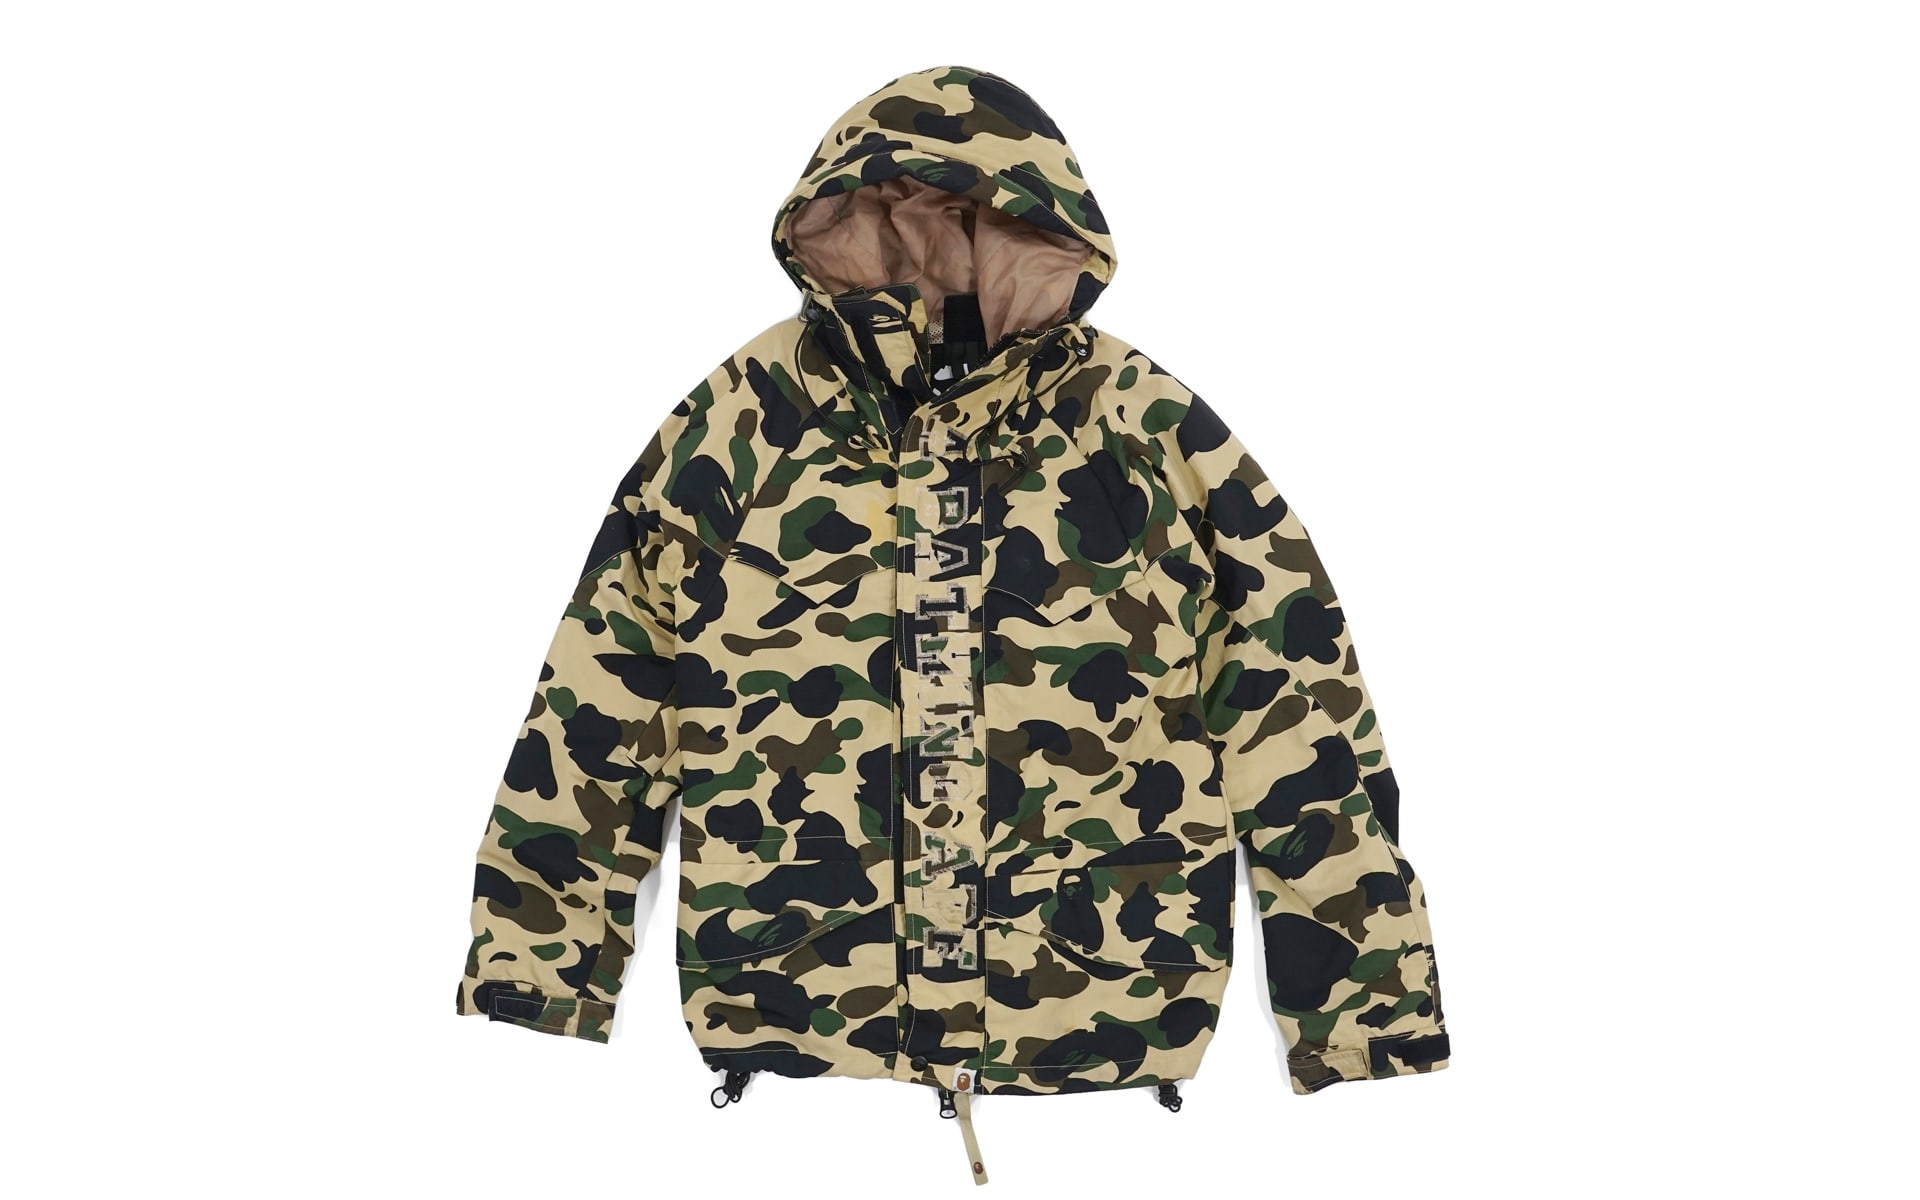 34319fe5e0 The 25 Best Bape Items | Complex